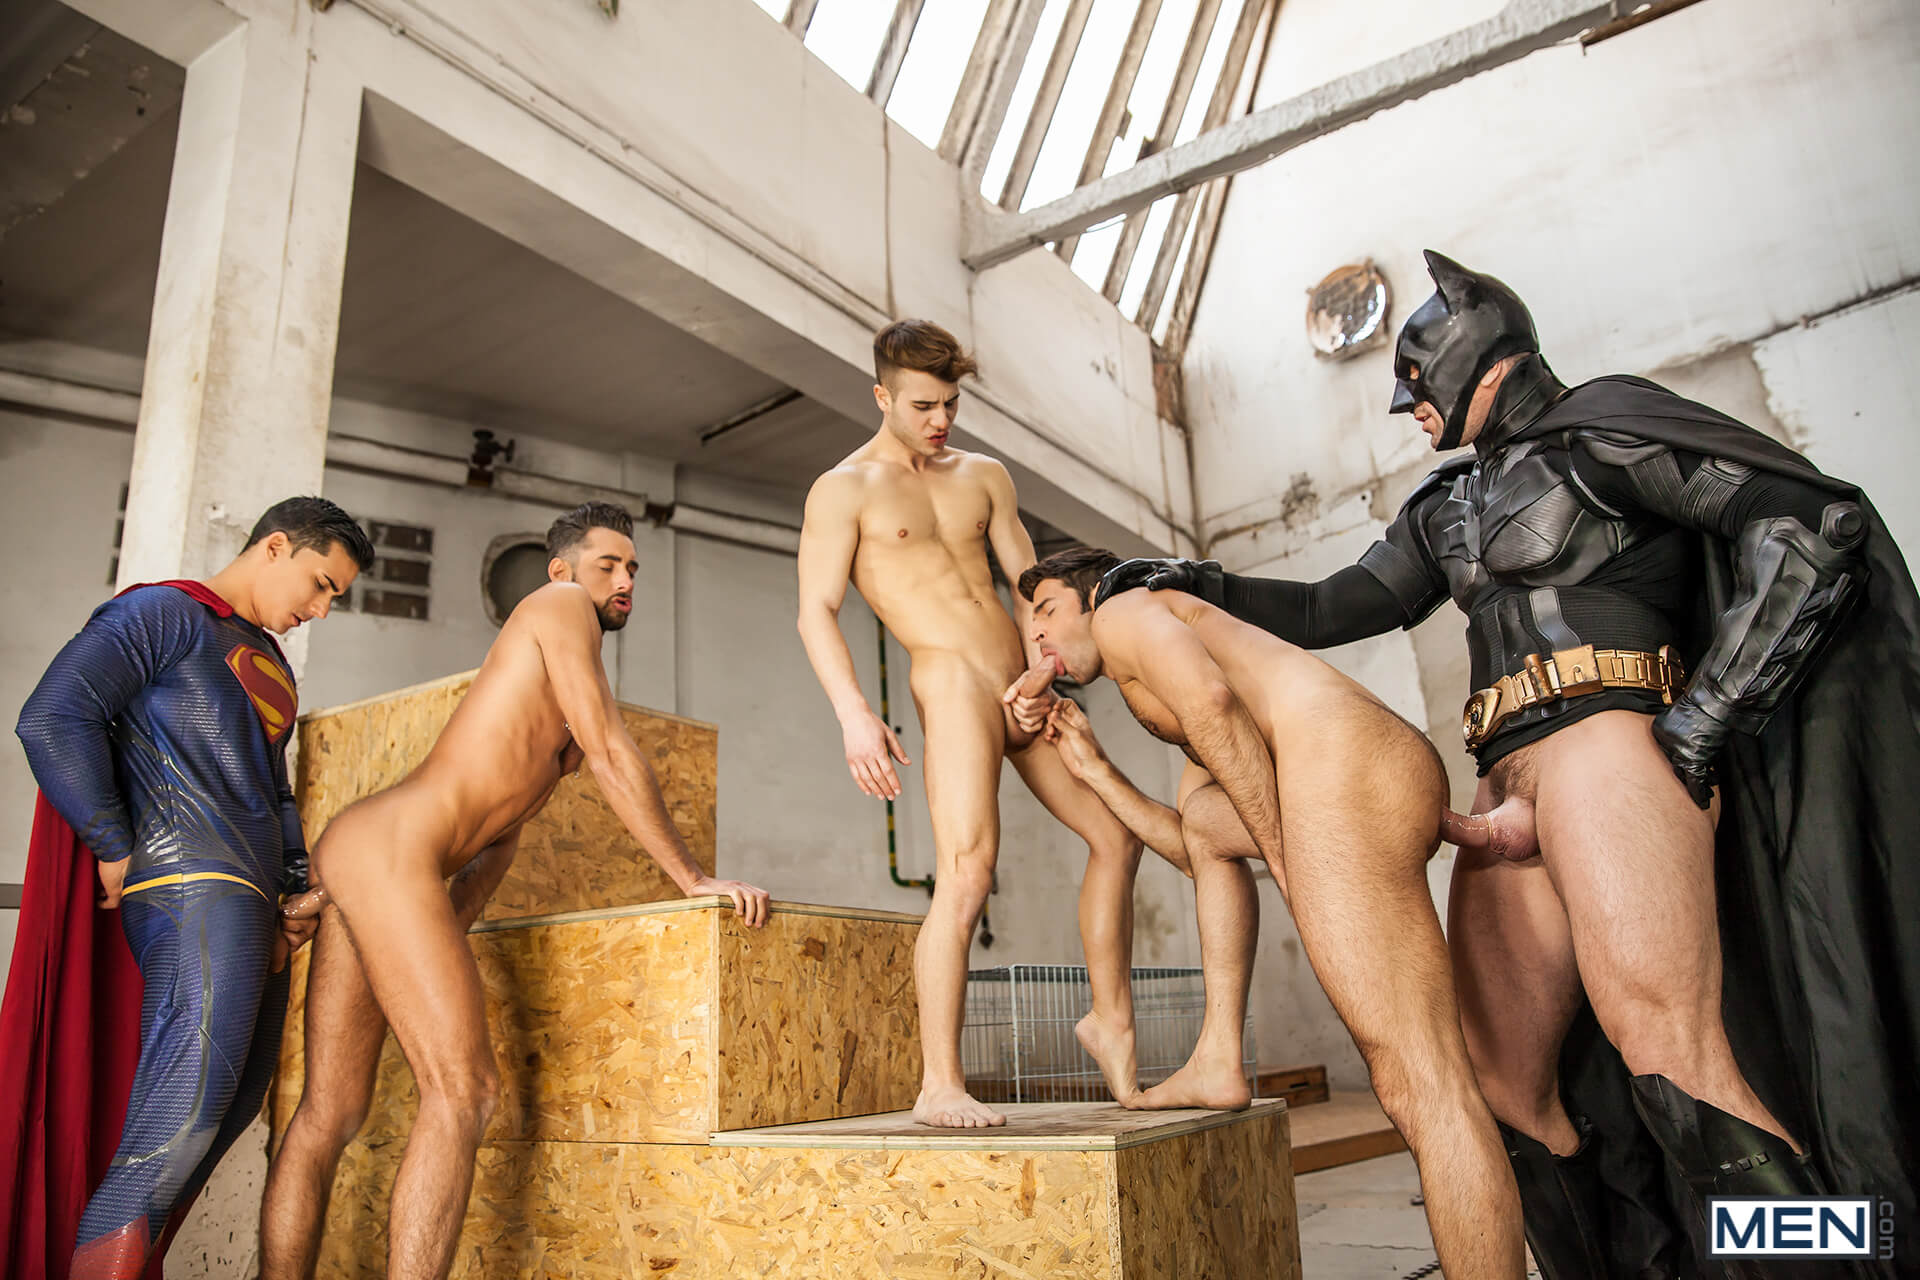 men jizz orgy batman v superman a gay xxx parody part 3 allen king dario beck massimo piano topher di maggio trenton ducati gay porn blog image 44